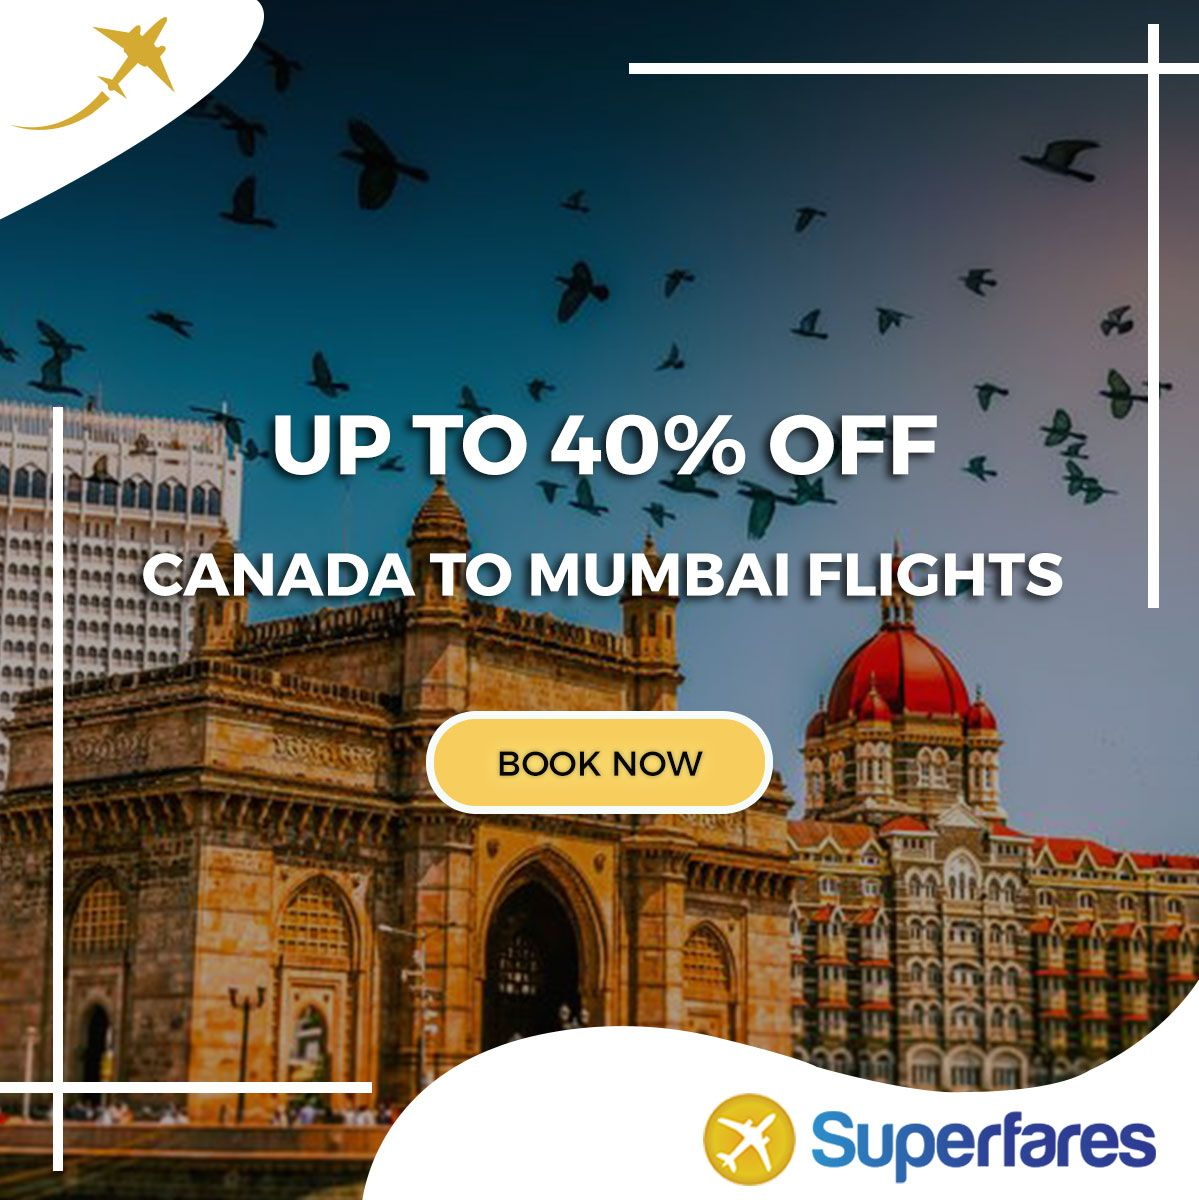 Are you looking for flight tickets to Mumbai at the lowest